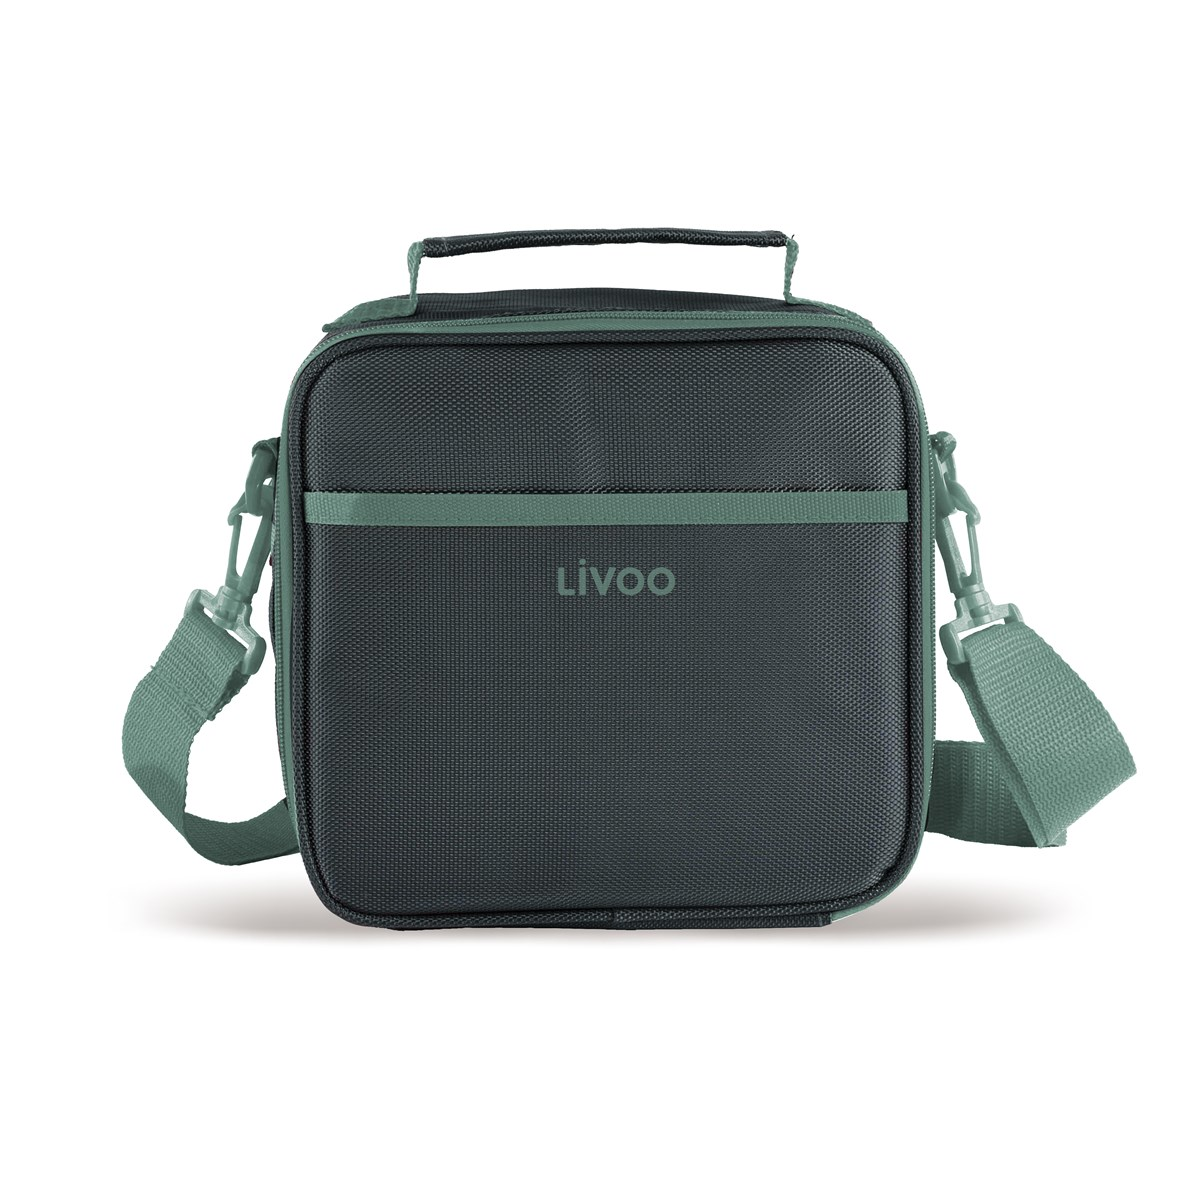 Sac à repas isotherme lunch box en polyester vert